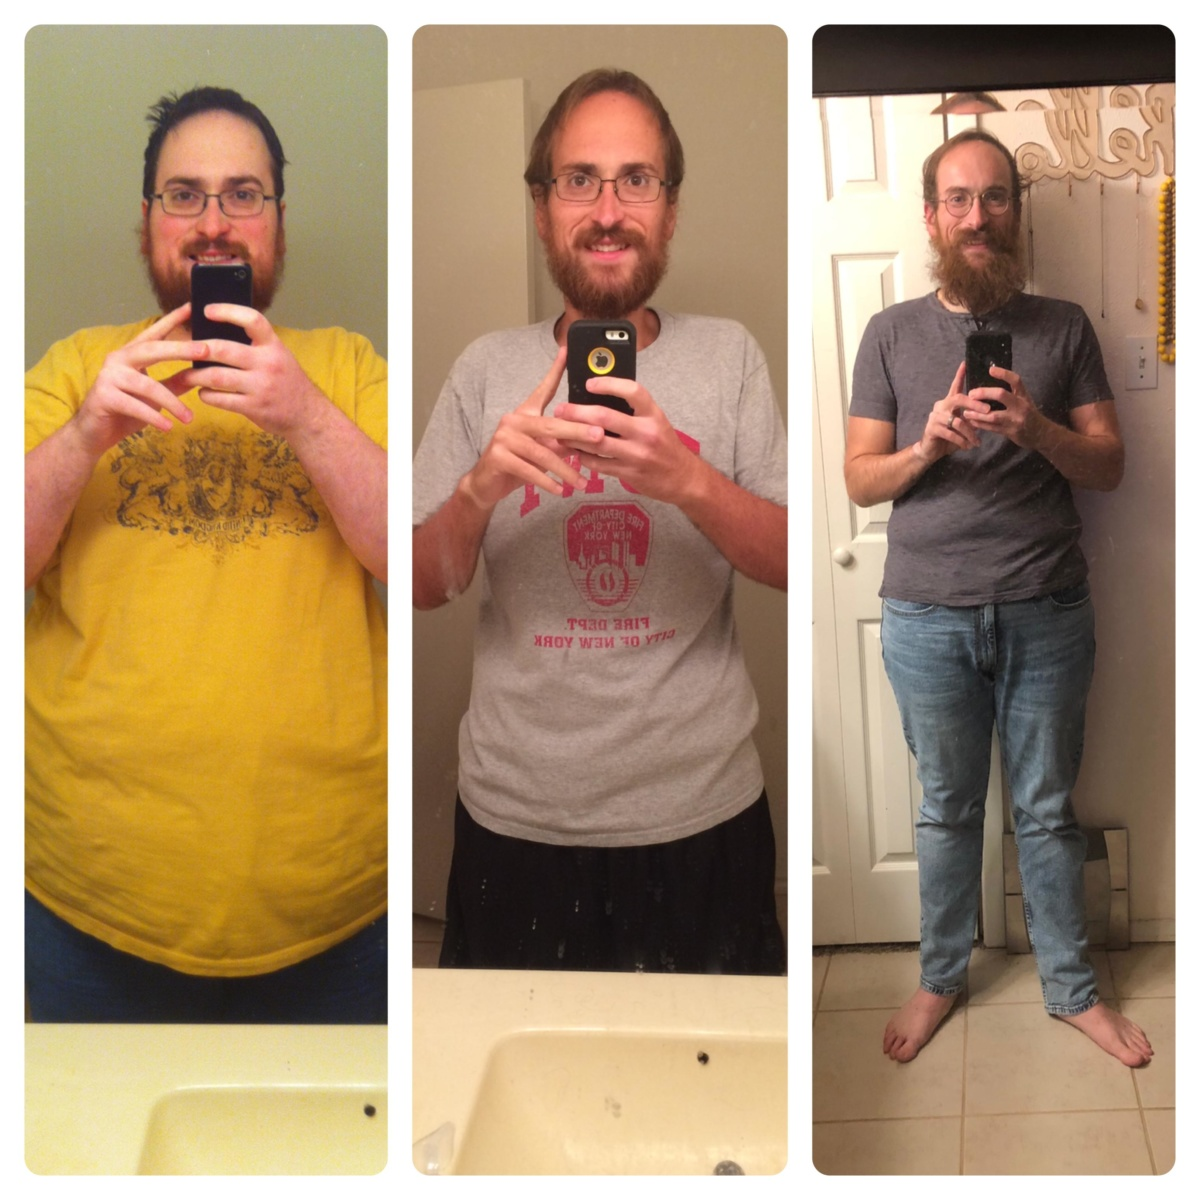 I've maintained my weight loss for over 3 years